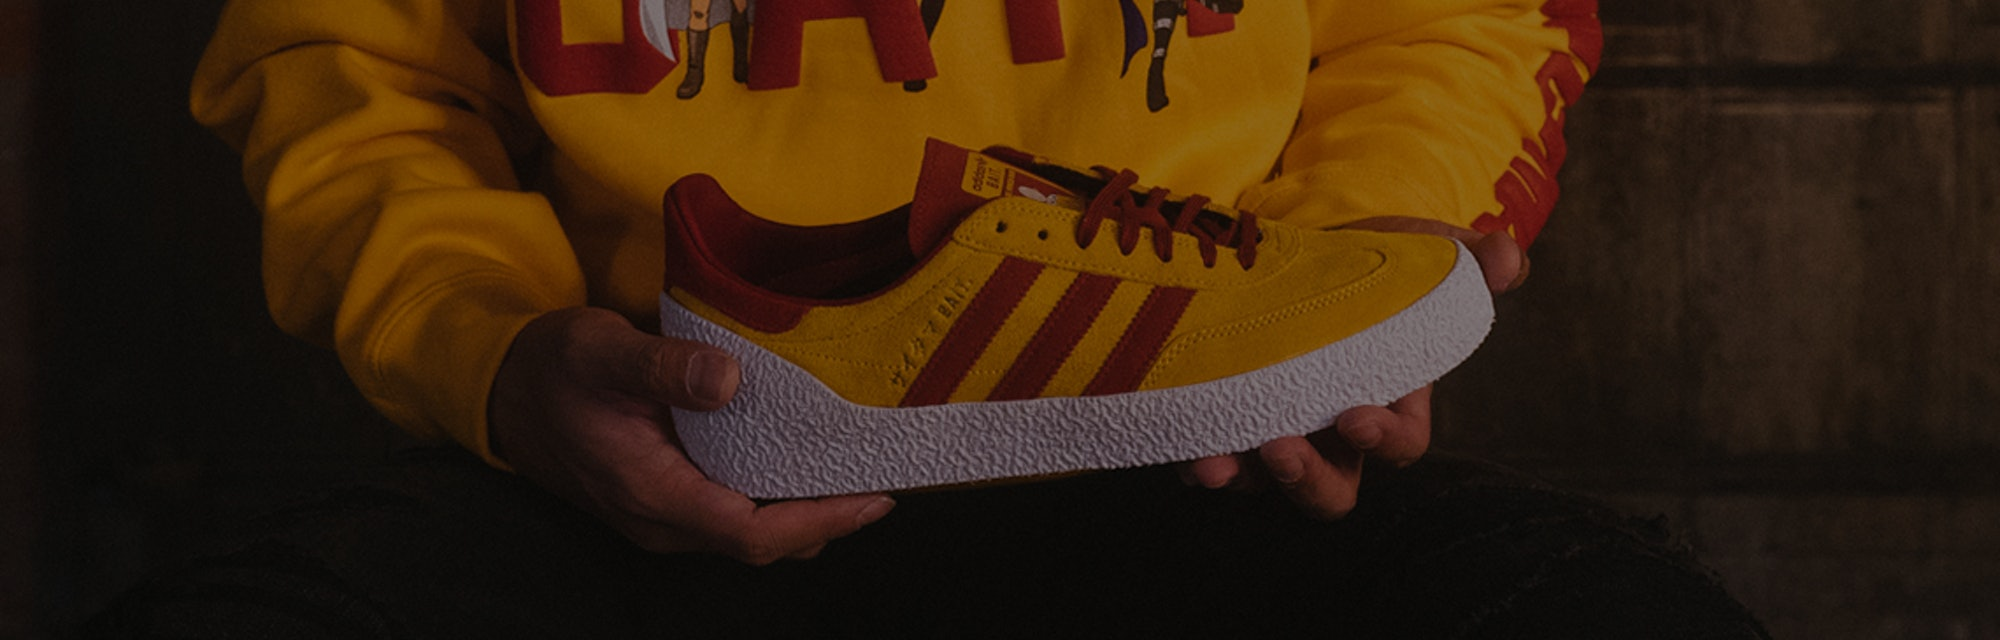 One-Punch Man BAIT Adidas Montreal 76